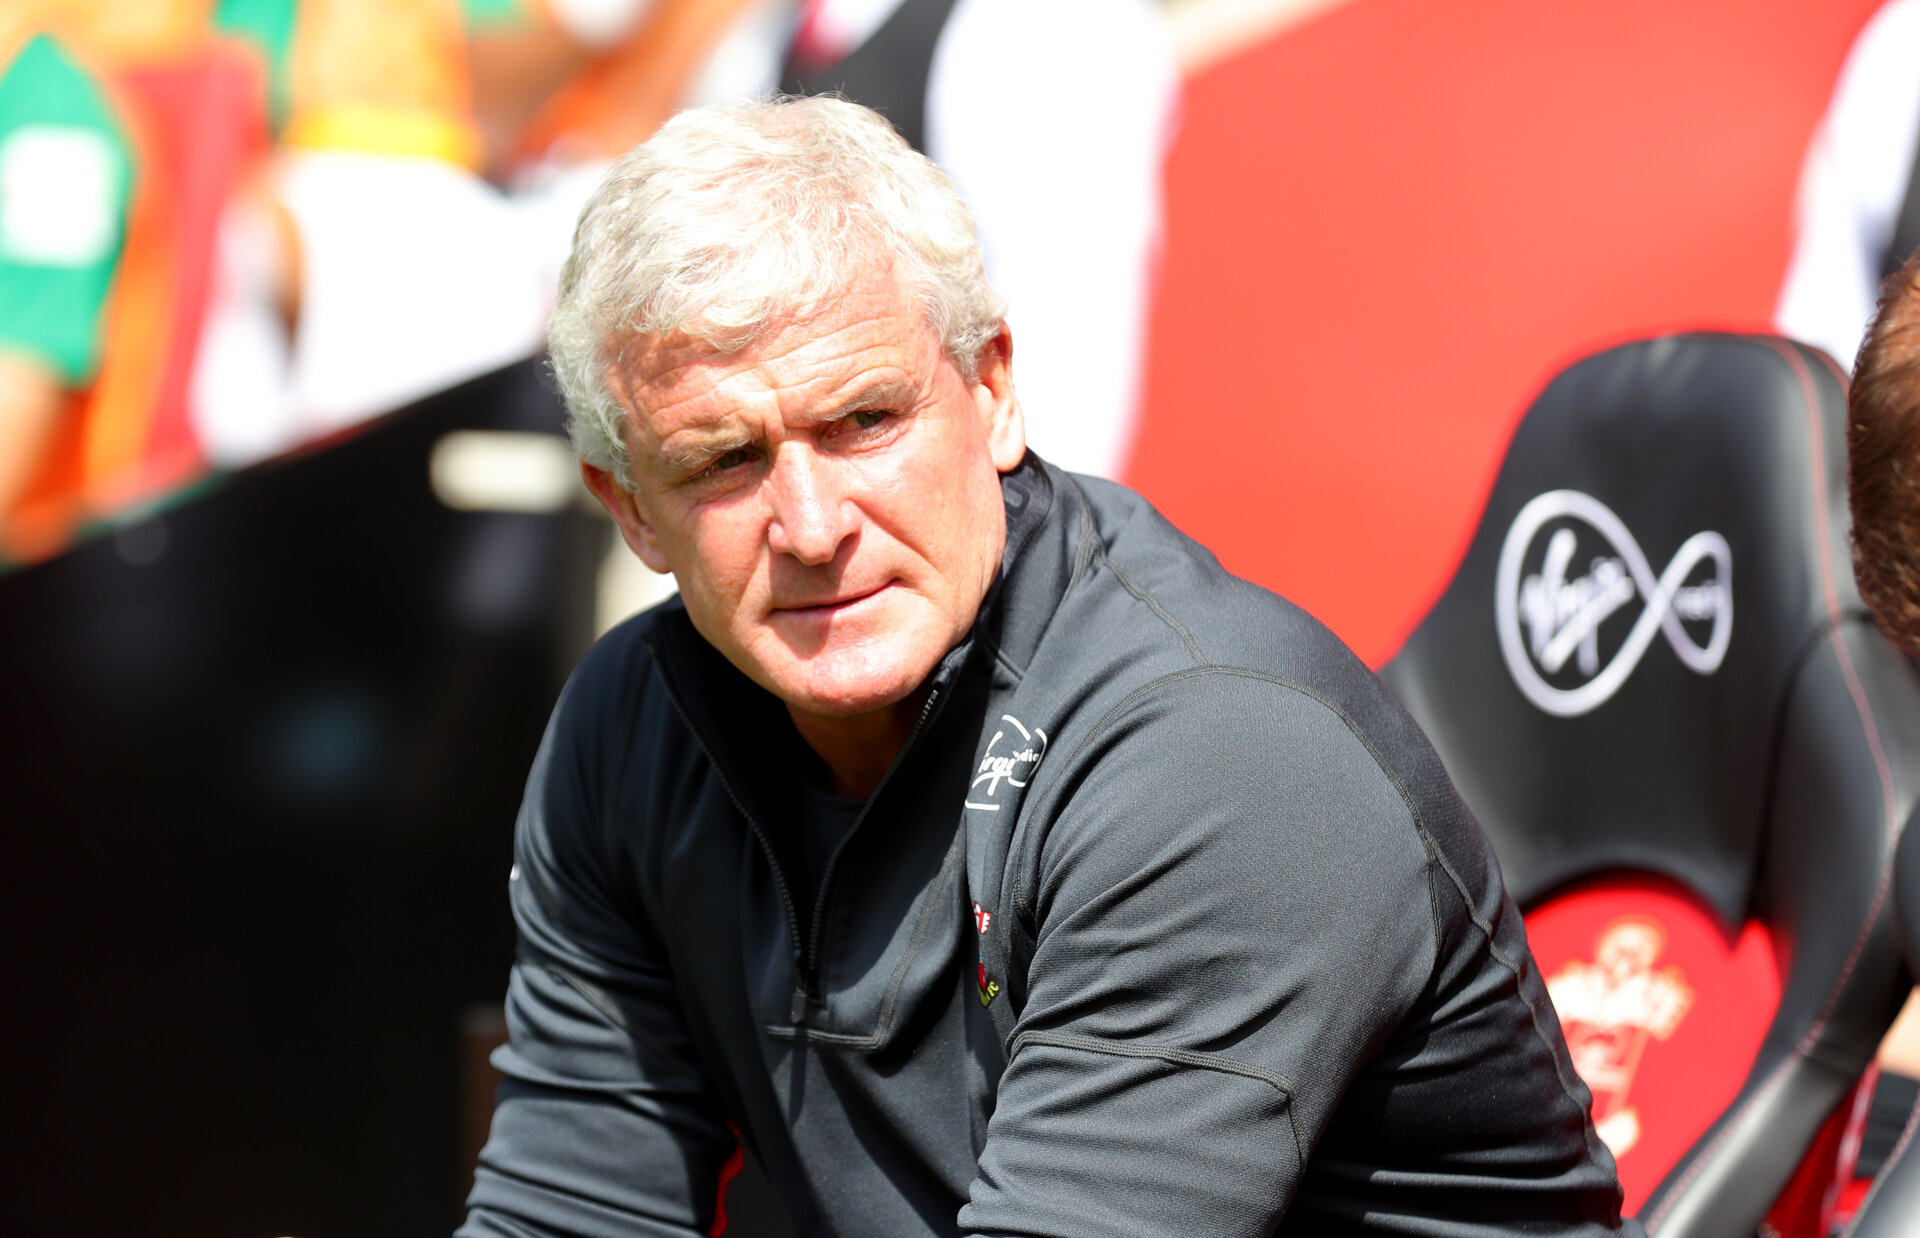 SOUTHAMPTON, ENGLAND - AUGUST 04: Mark Hughes of Southampton FC during the pre-season friendly match between Southampton and Borussia Monchengladbach at St Mary's Stadium on August 4, 2018 in Southampton, England. (Photo by Matt Watson/Southampton FC via Getty Images)